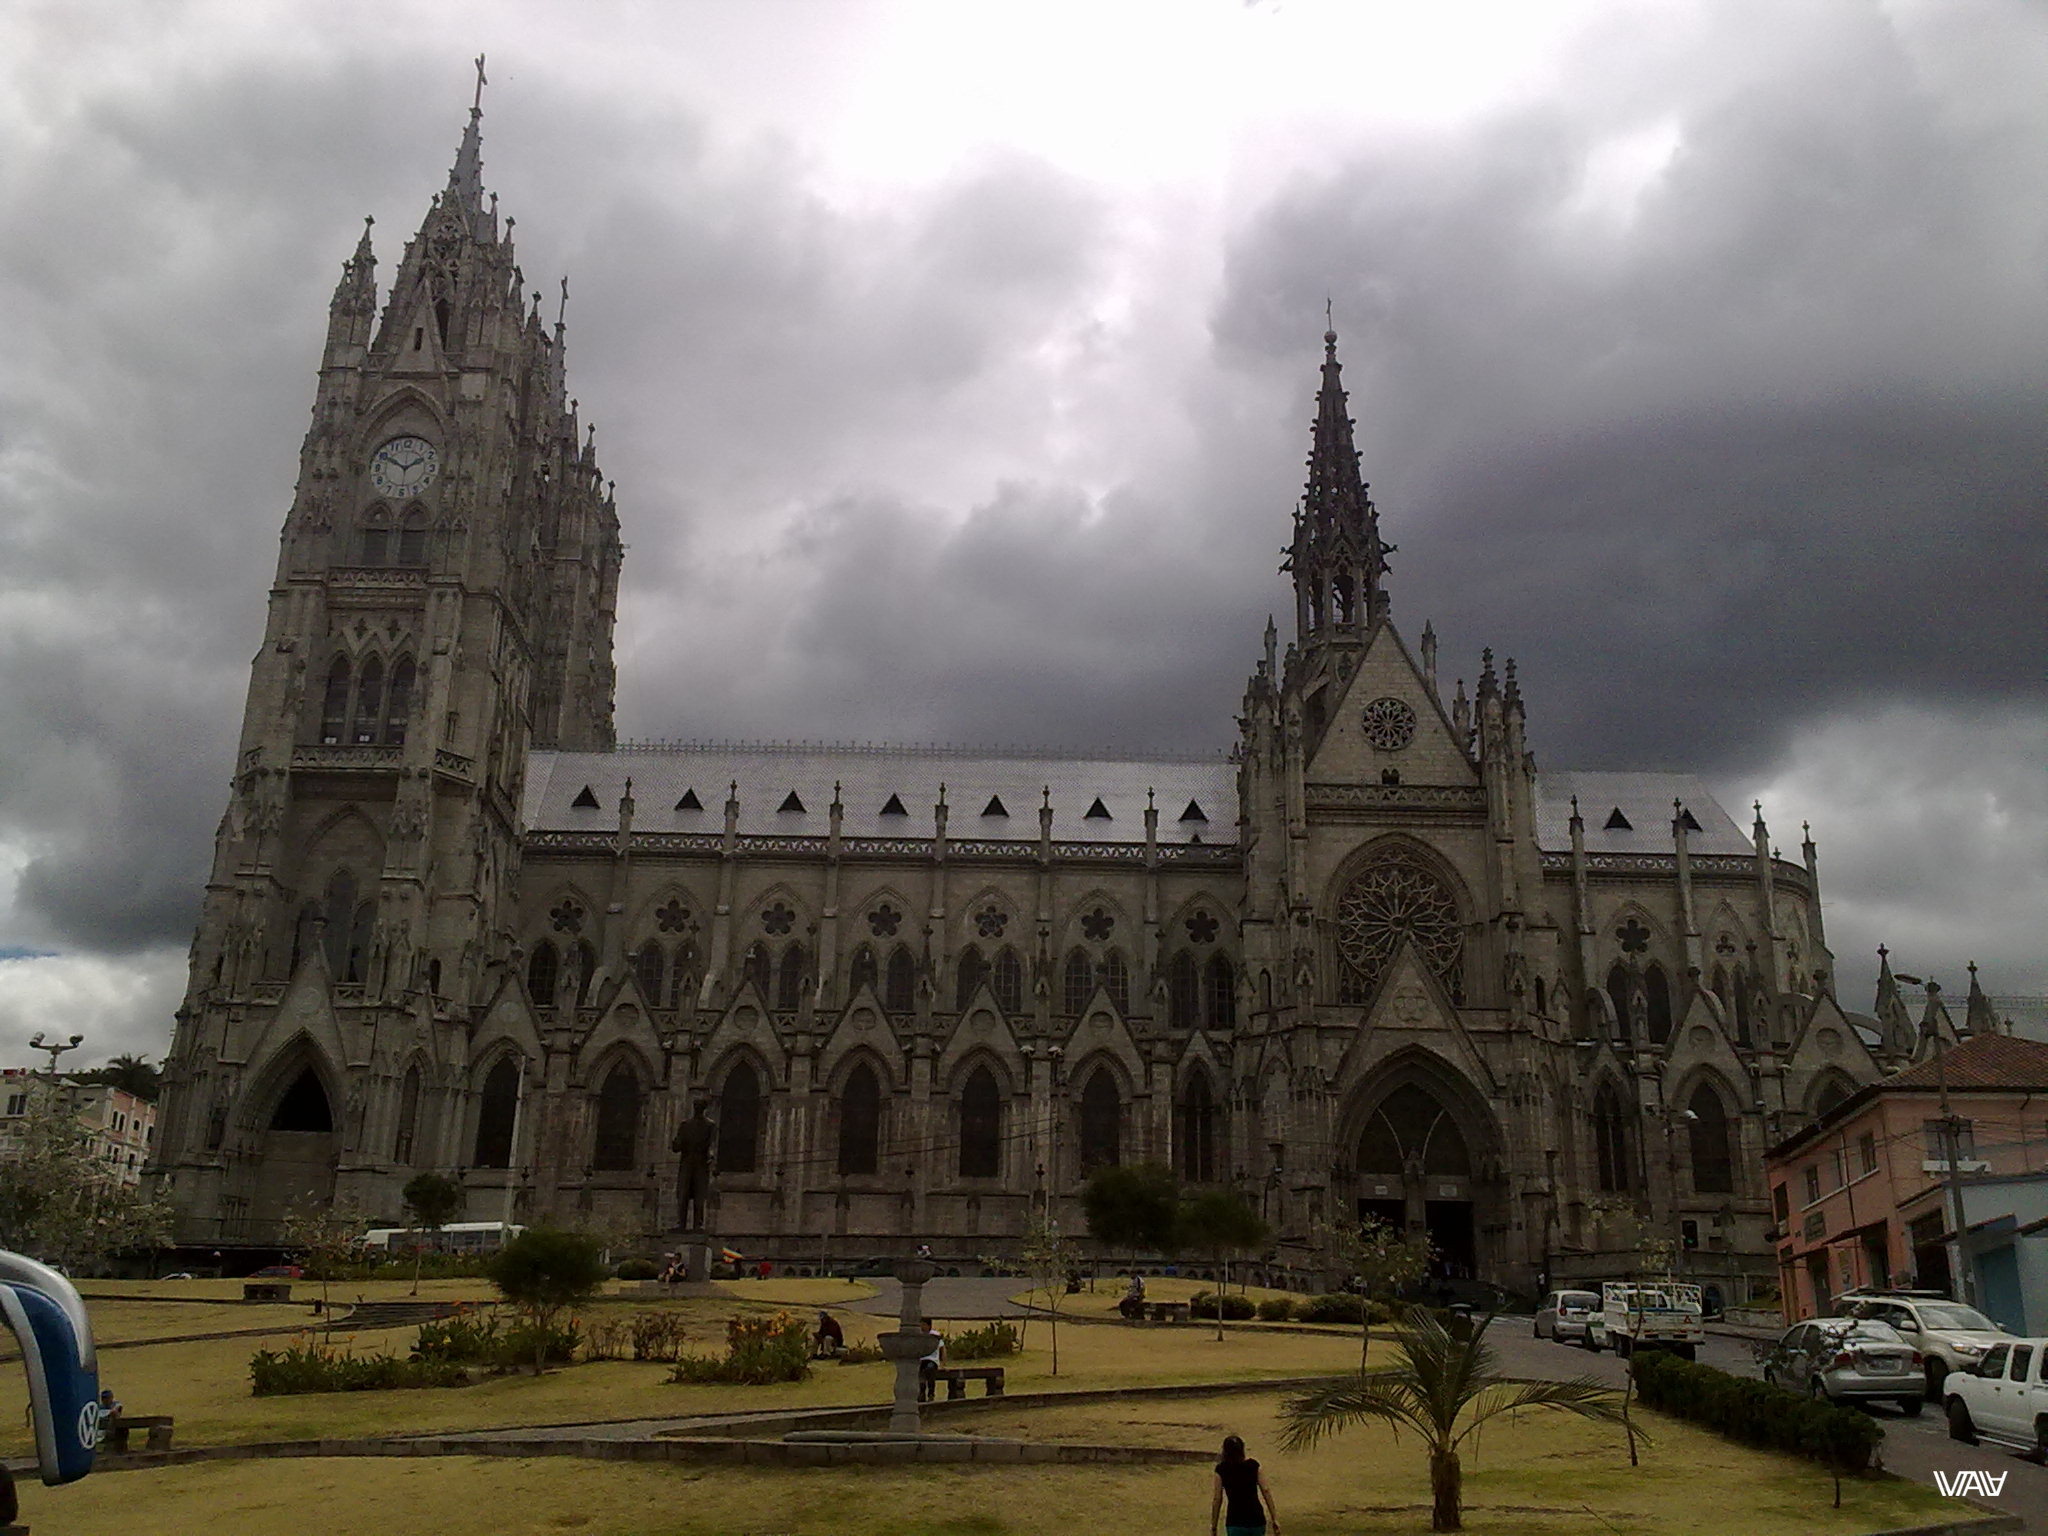 Basílica del Voto Nacional is the one of the main seeing in Quito, Ecuador